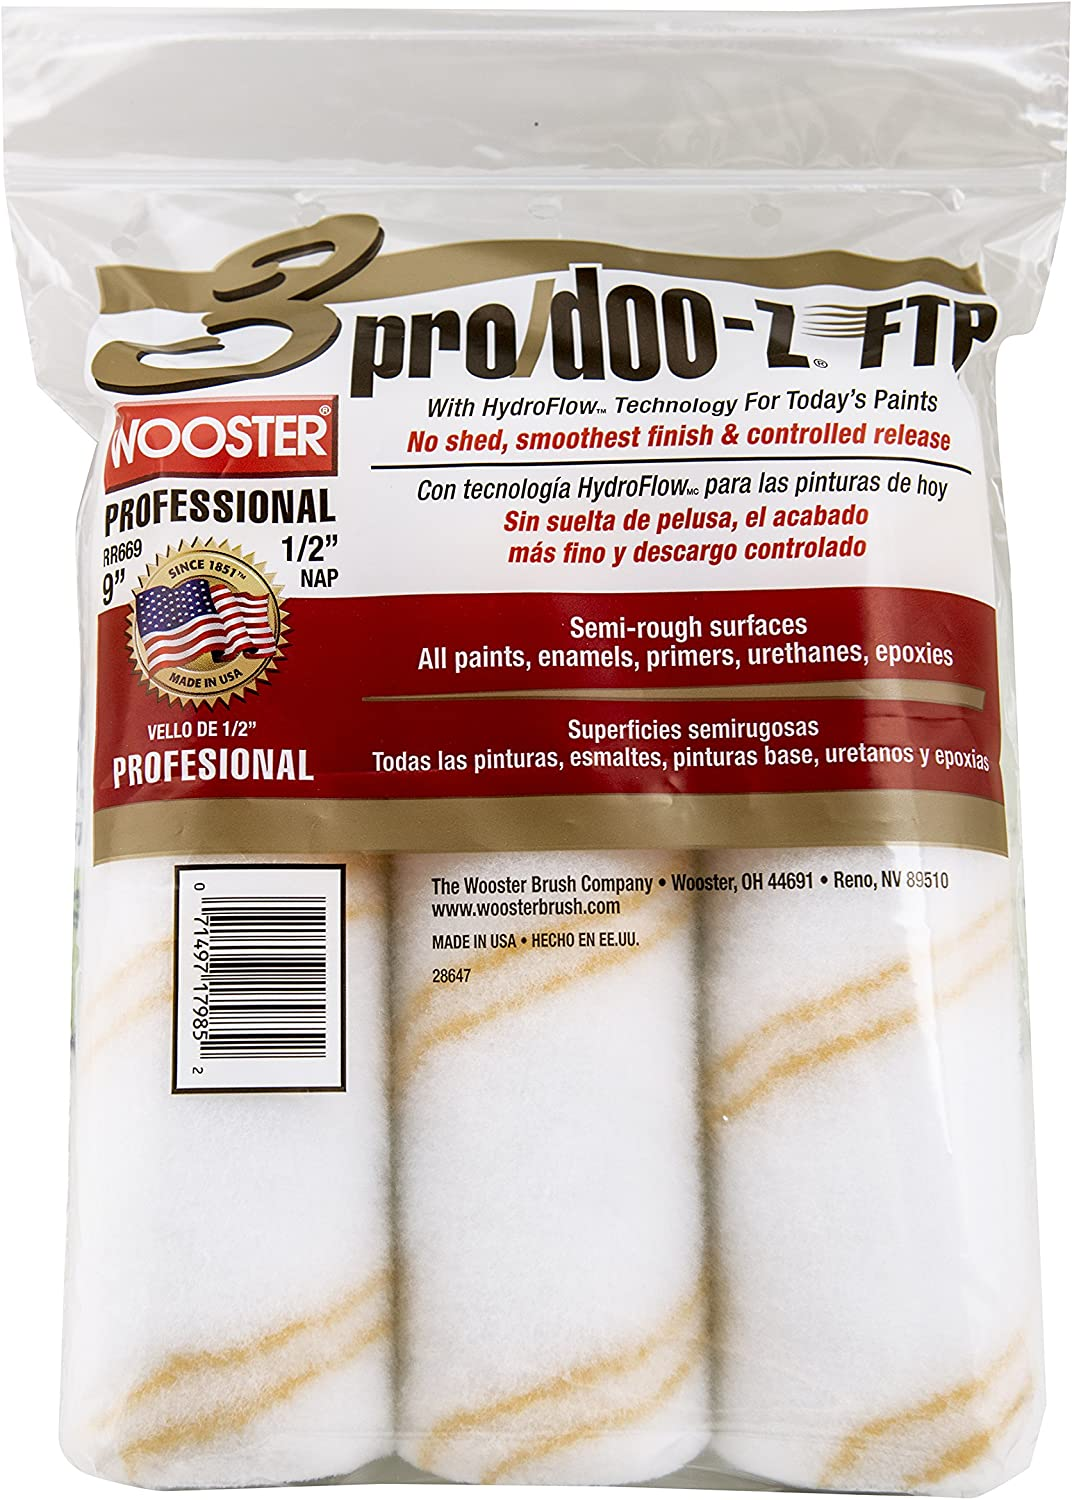 The Wooster Brush Company RR669-9 Pro Doo Z FTP Roller Cover 1/2-Inch Nap, 3-Pack